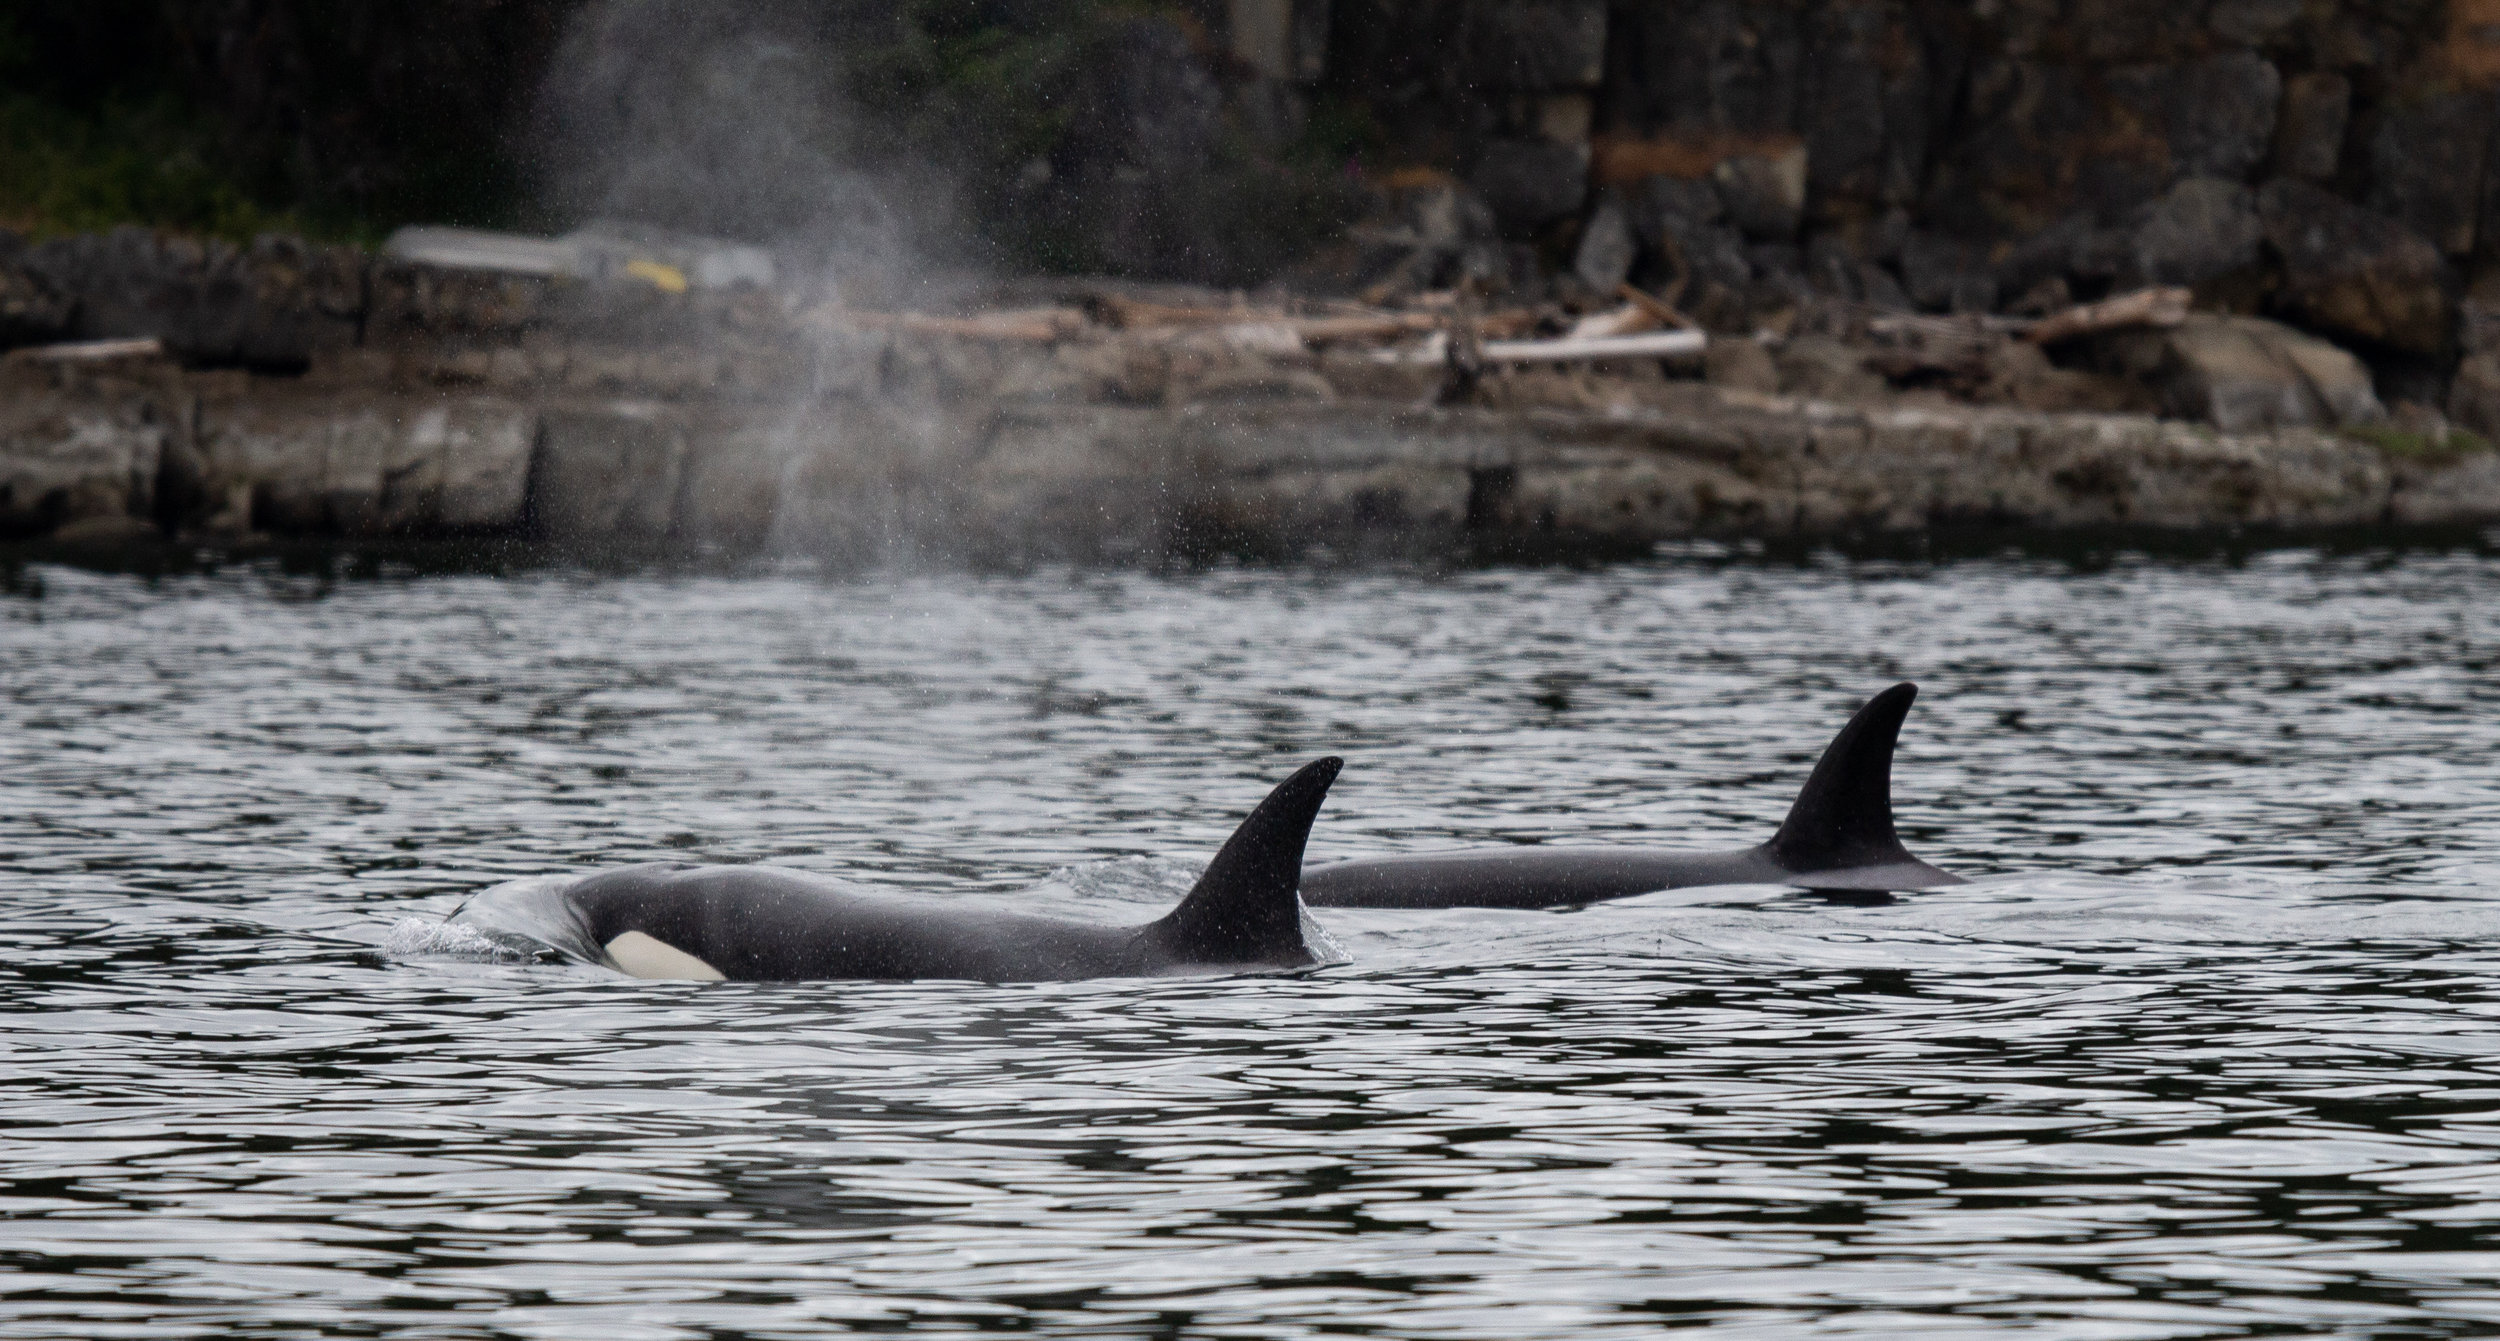 The whales surface after a long dive.Photo by Natalie Reichenbacher